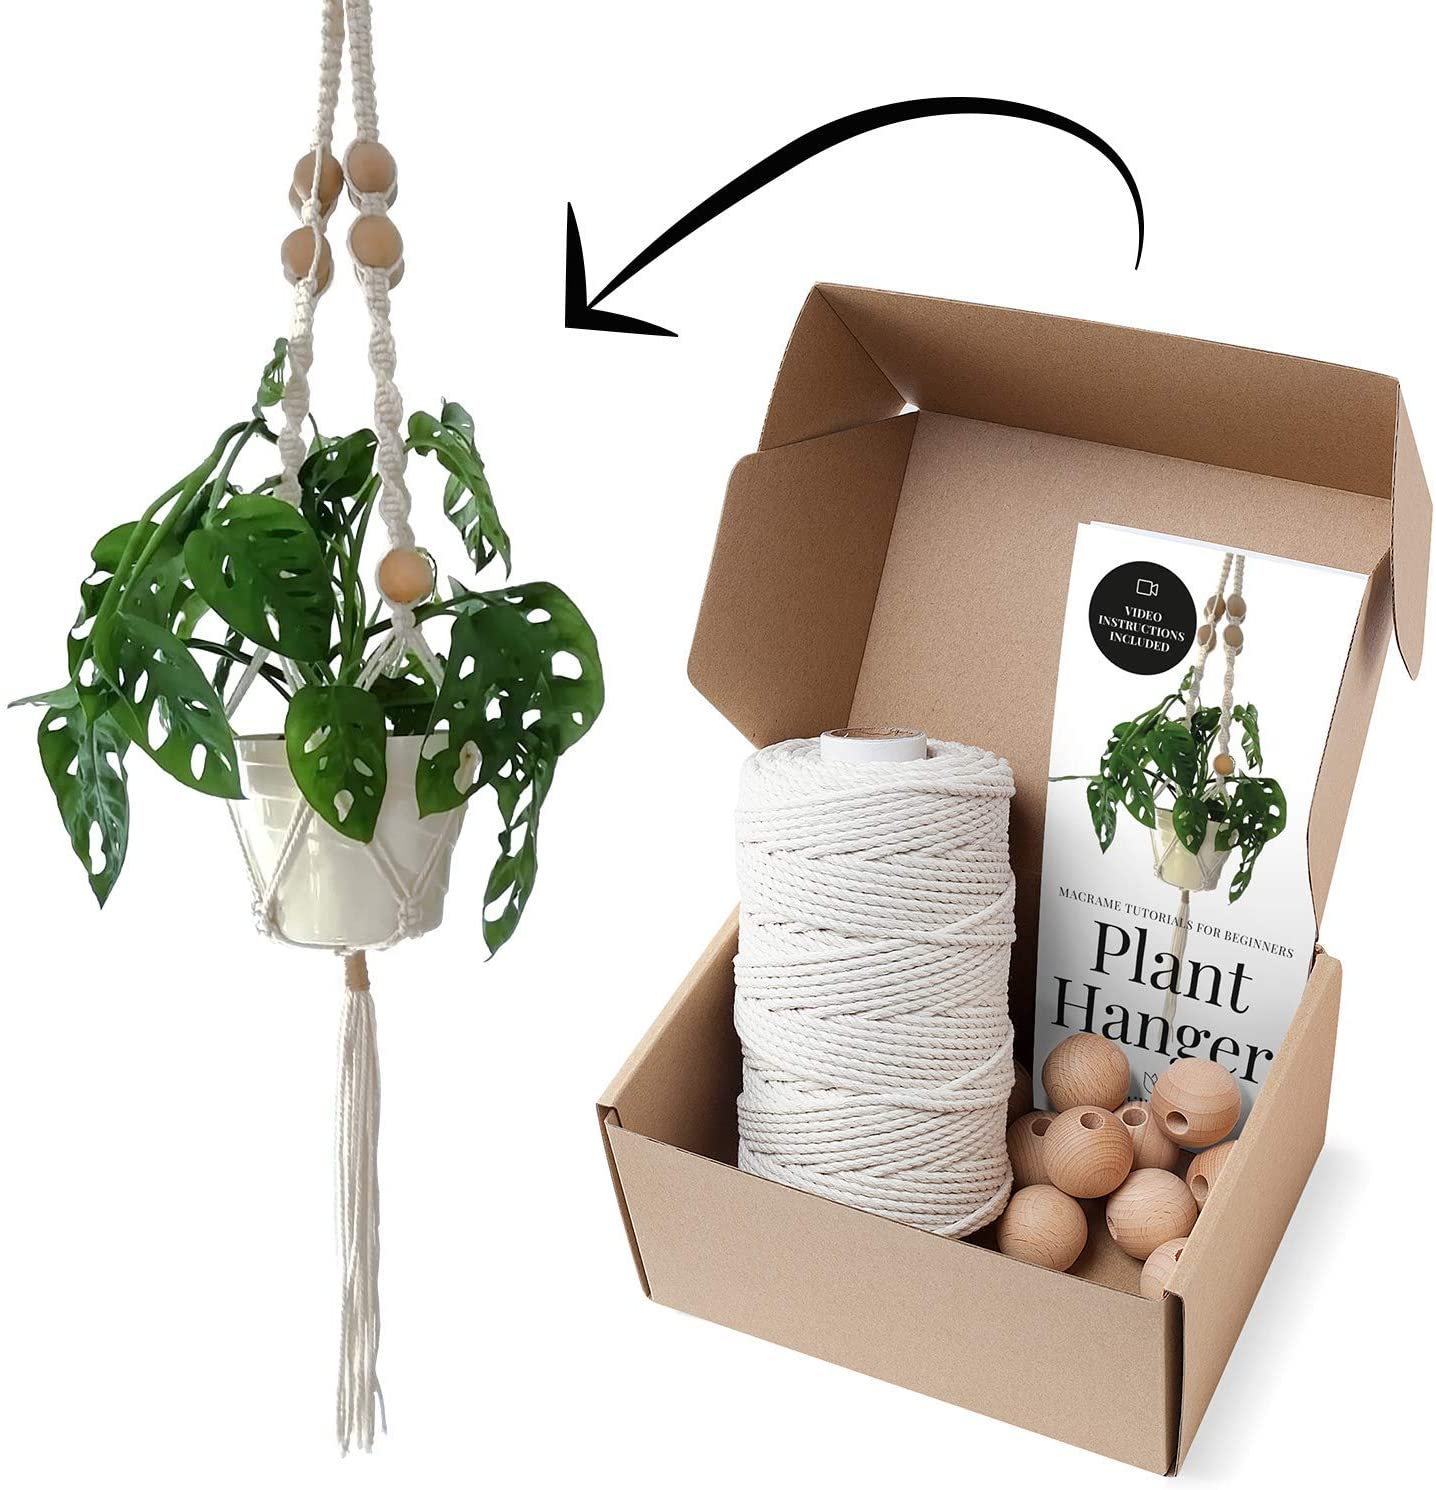 Macrame Kits, $30 @amazon.com